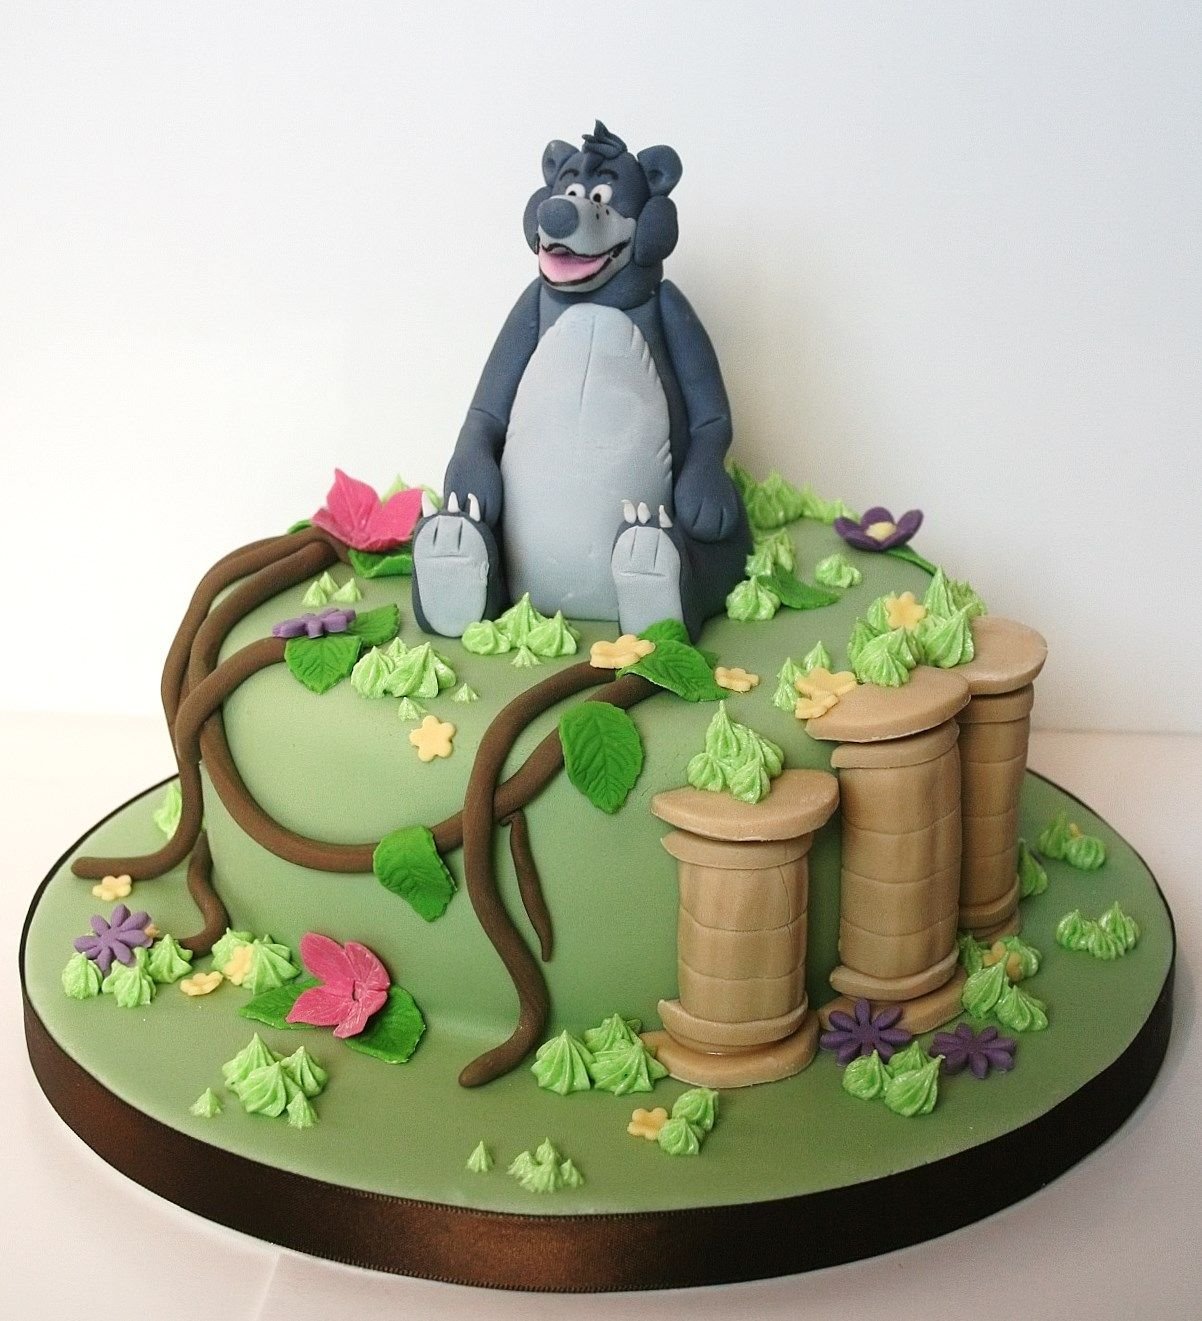 Jungle Book Baloo Cake Cakes Jungle Book Pinterest Cake